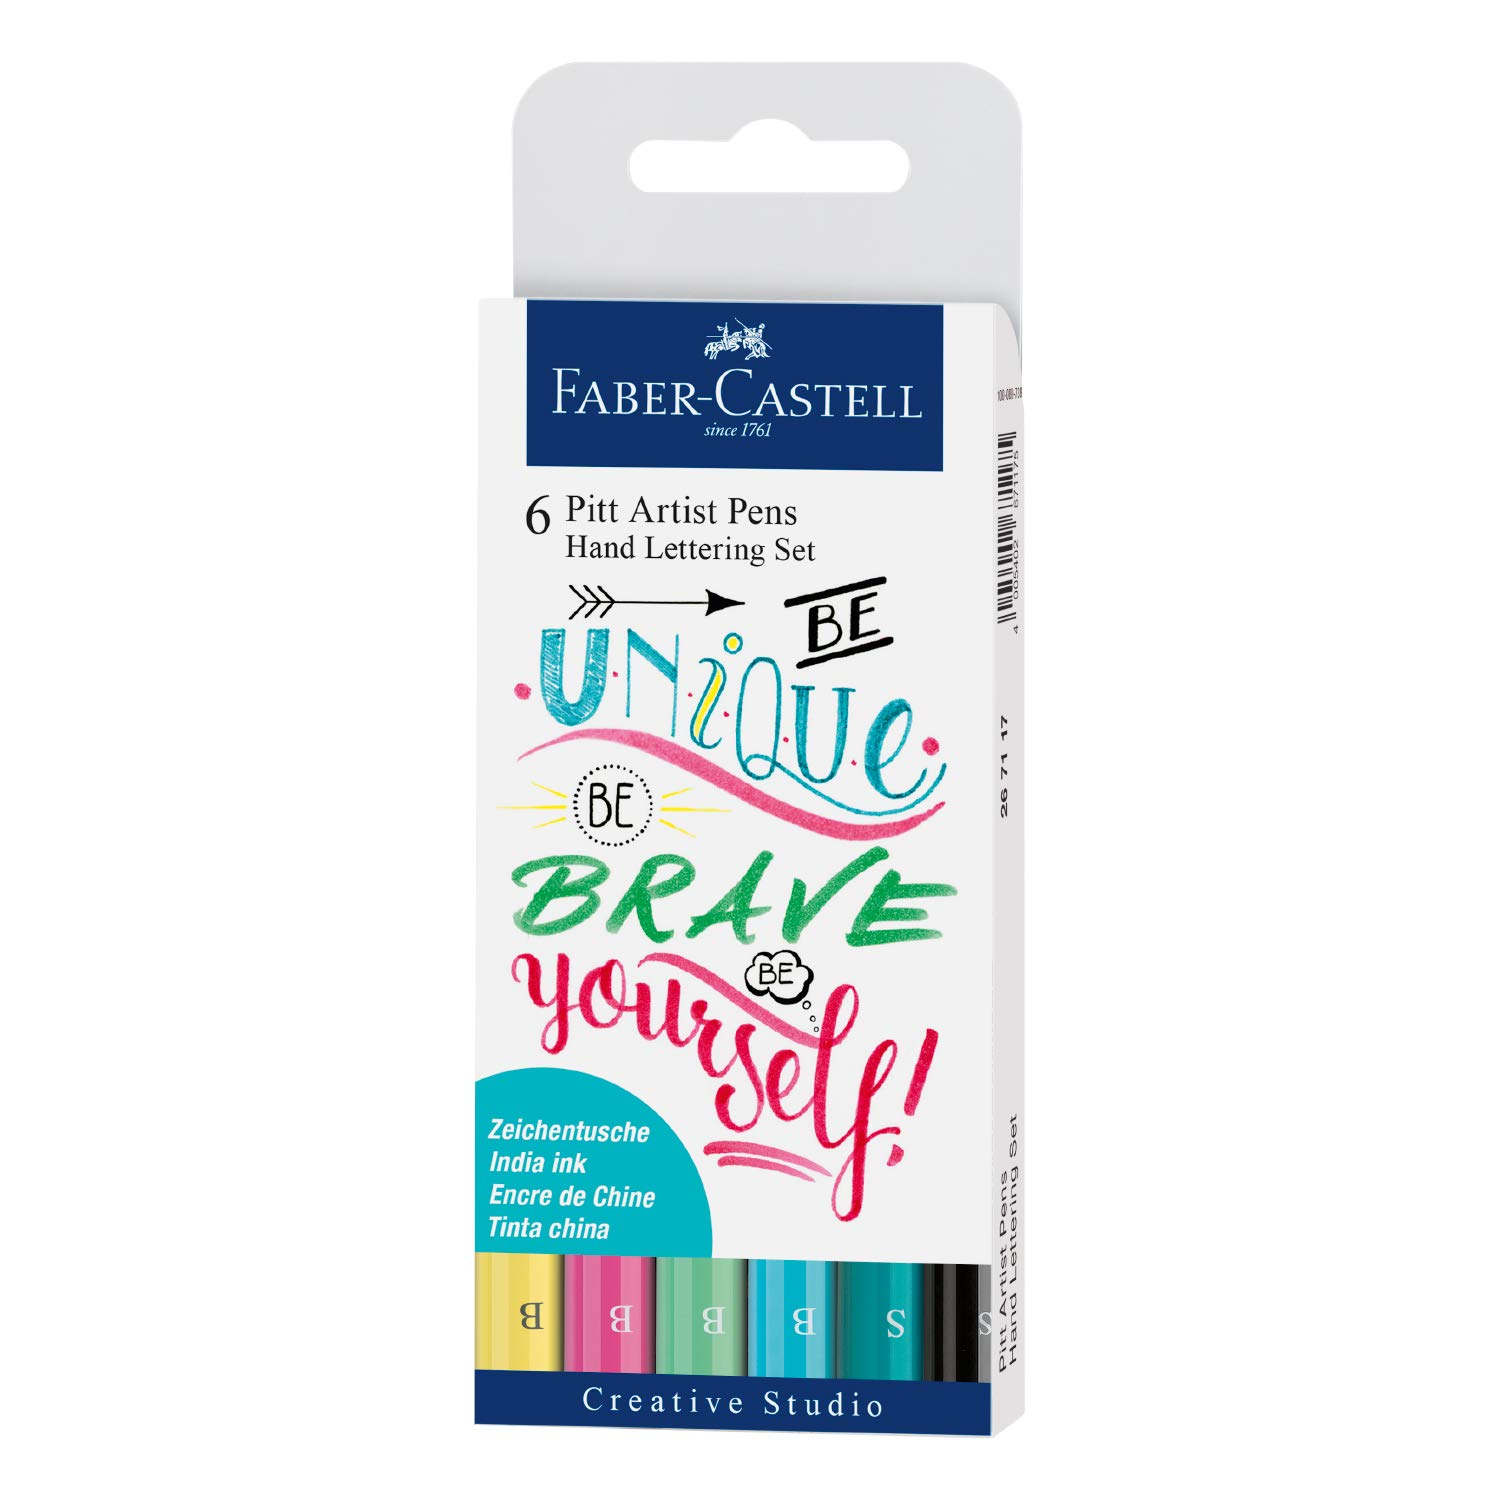 Faber-Castell Pitt Artist Pen Hand Lettering Set - 6 Modern Calligraphy and Lettering Markers in Assorted Nibs and Colors (Be Unique)